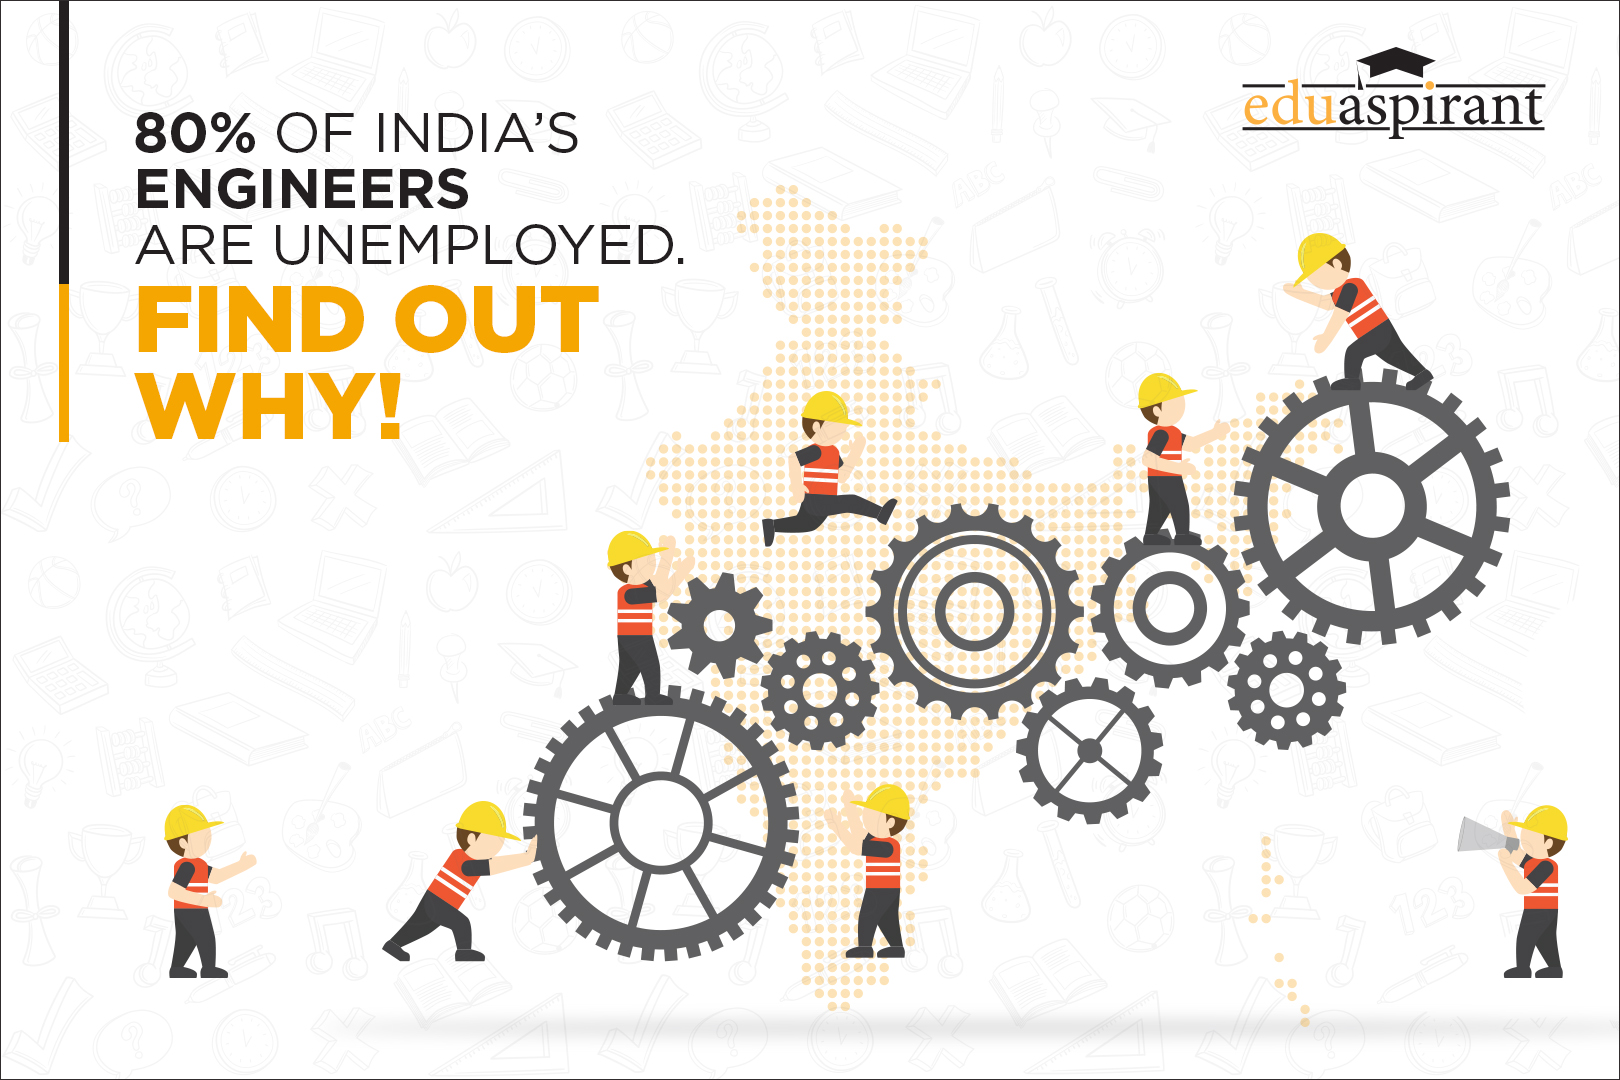 80% Unemployed Engineers in India – Where is the Gap?